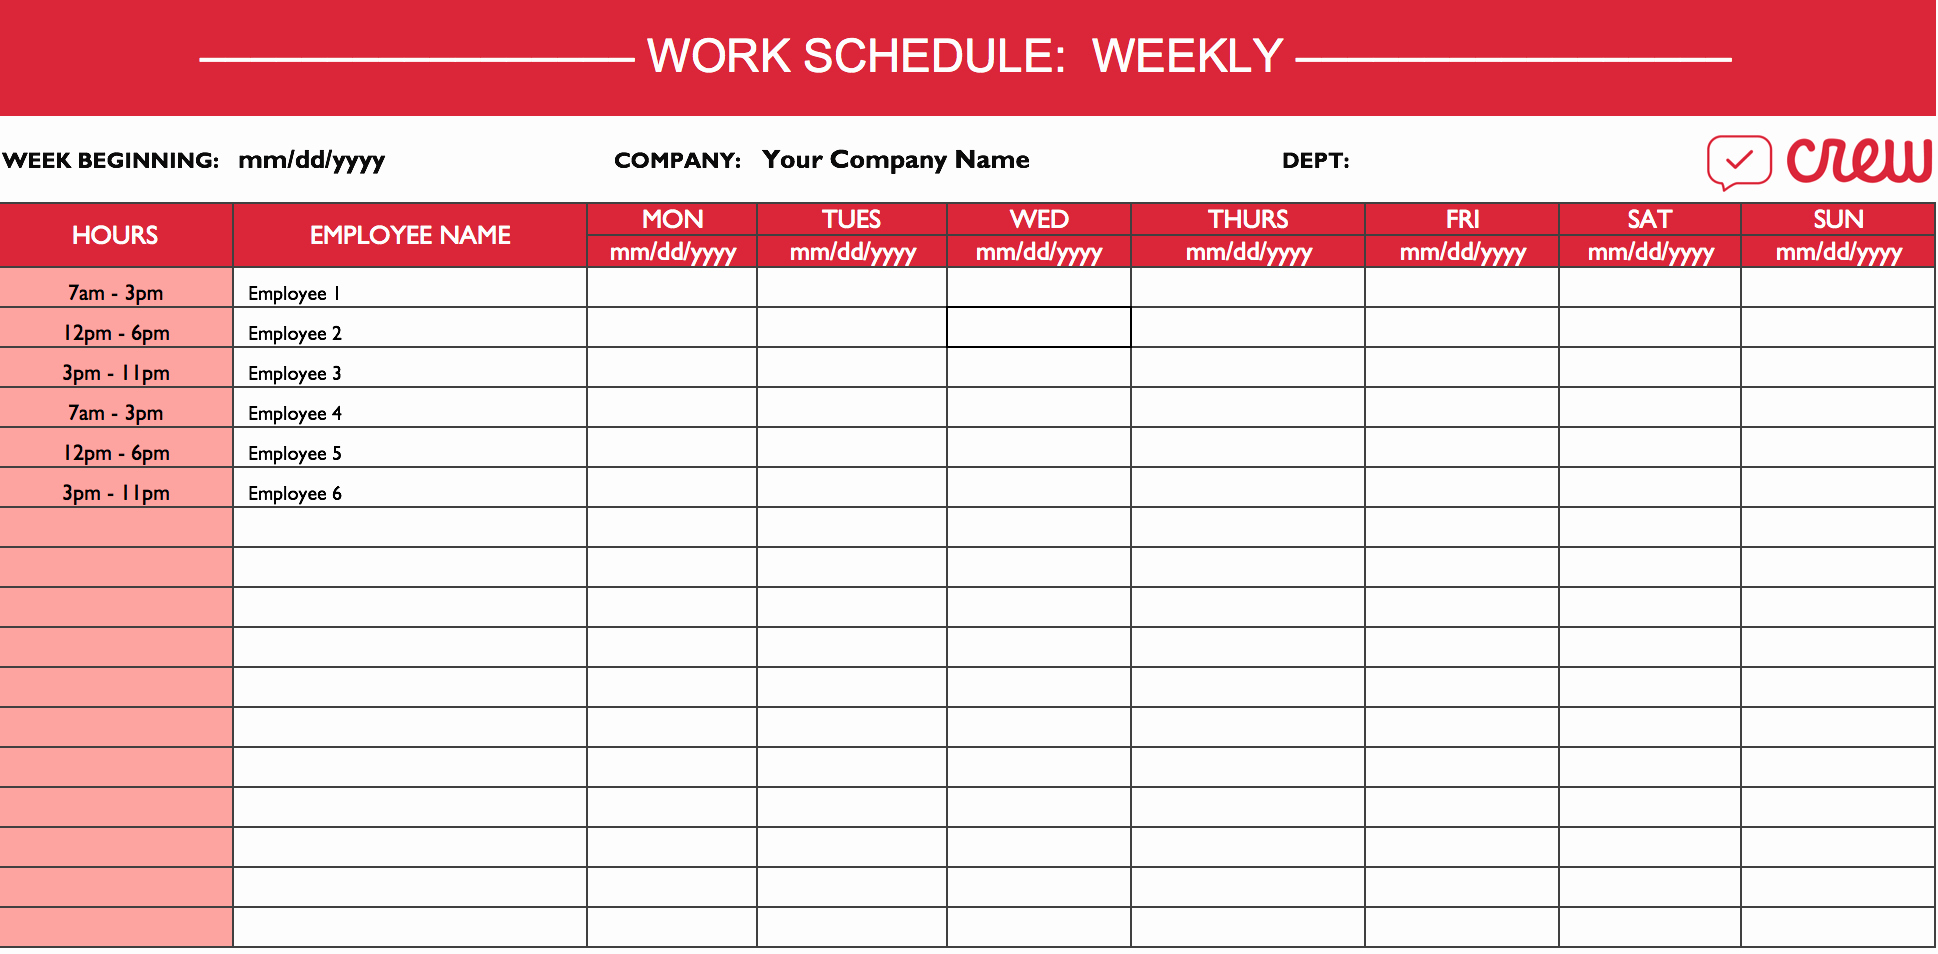 Free Weekly Work Schedule Template Beautiful Weekly Work Schedule Template I Crew